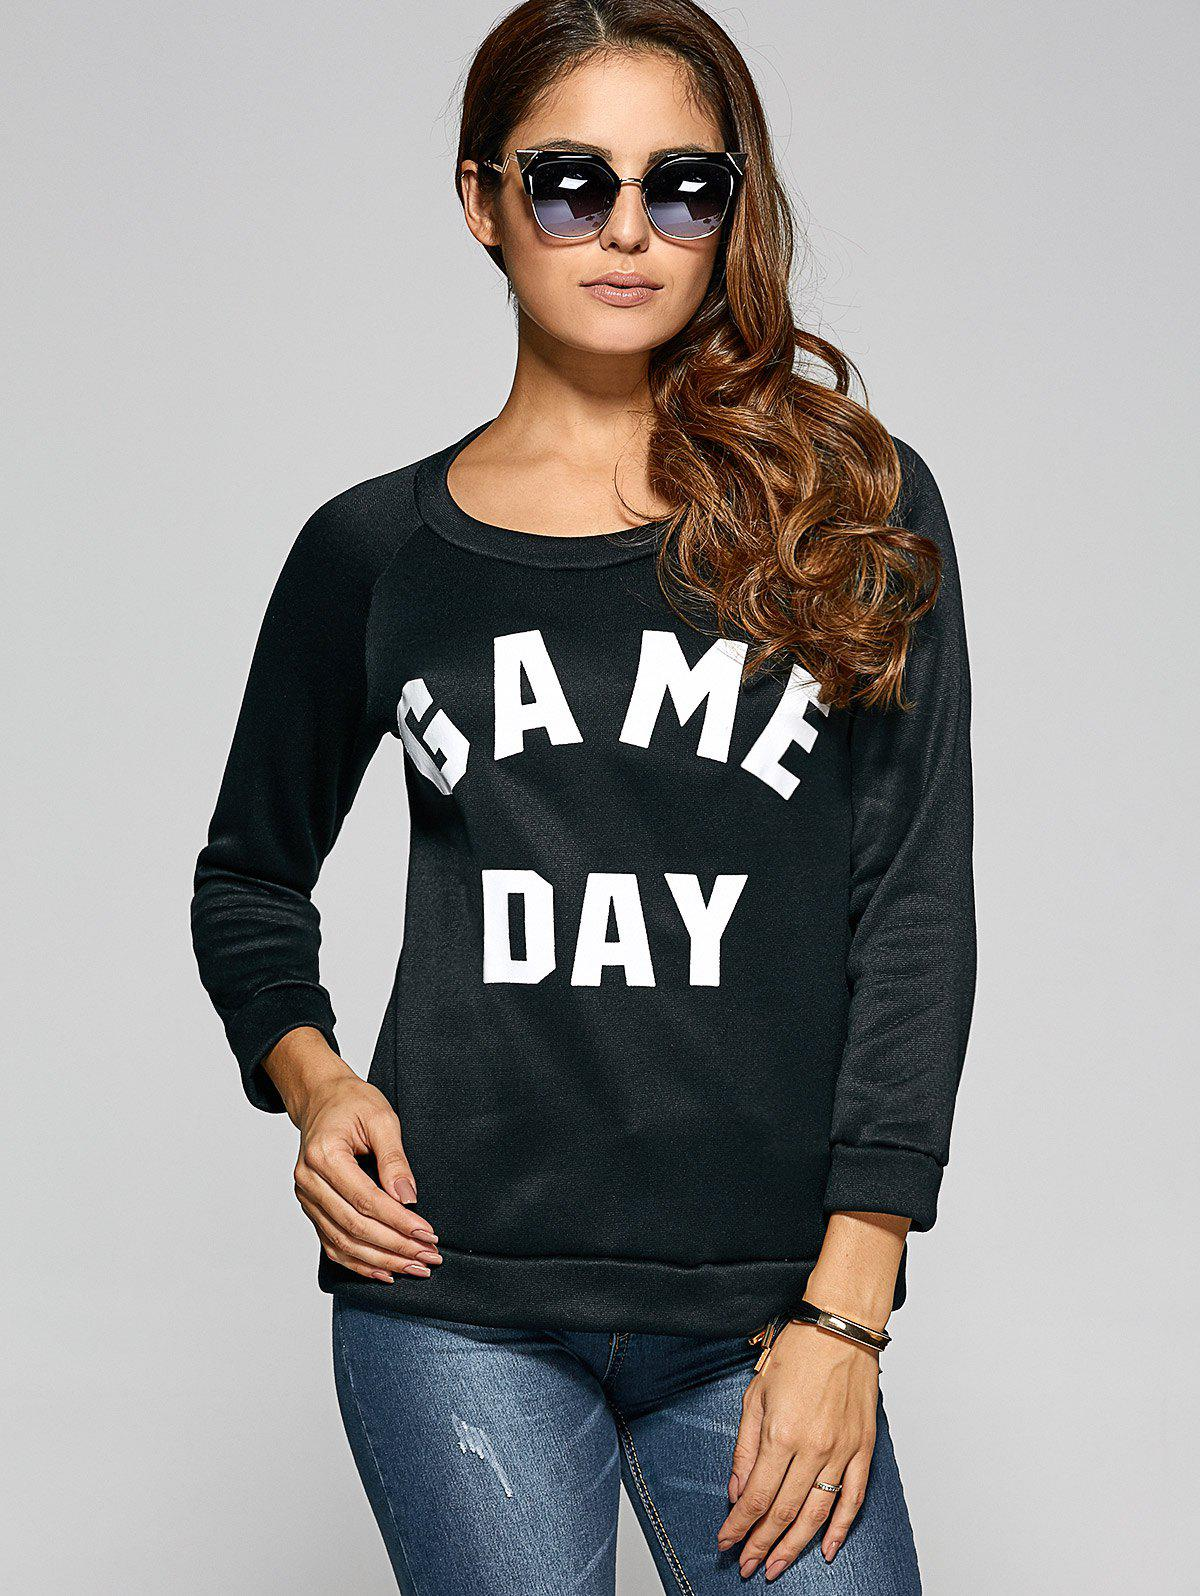 Unique Game Day Print Pullover Sweatshirt